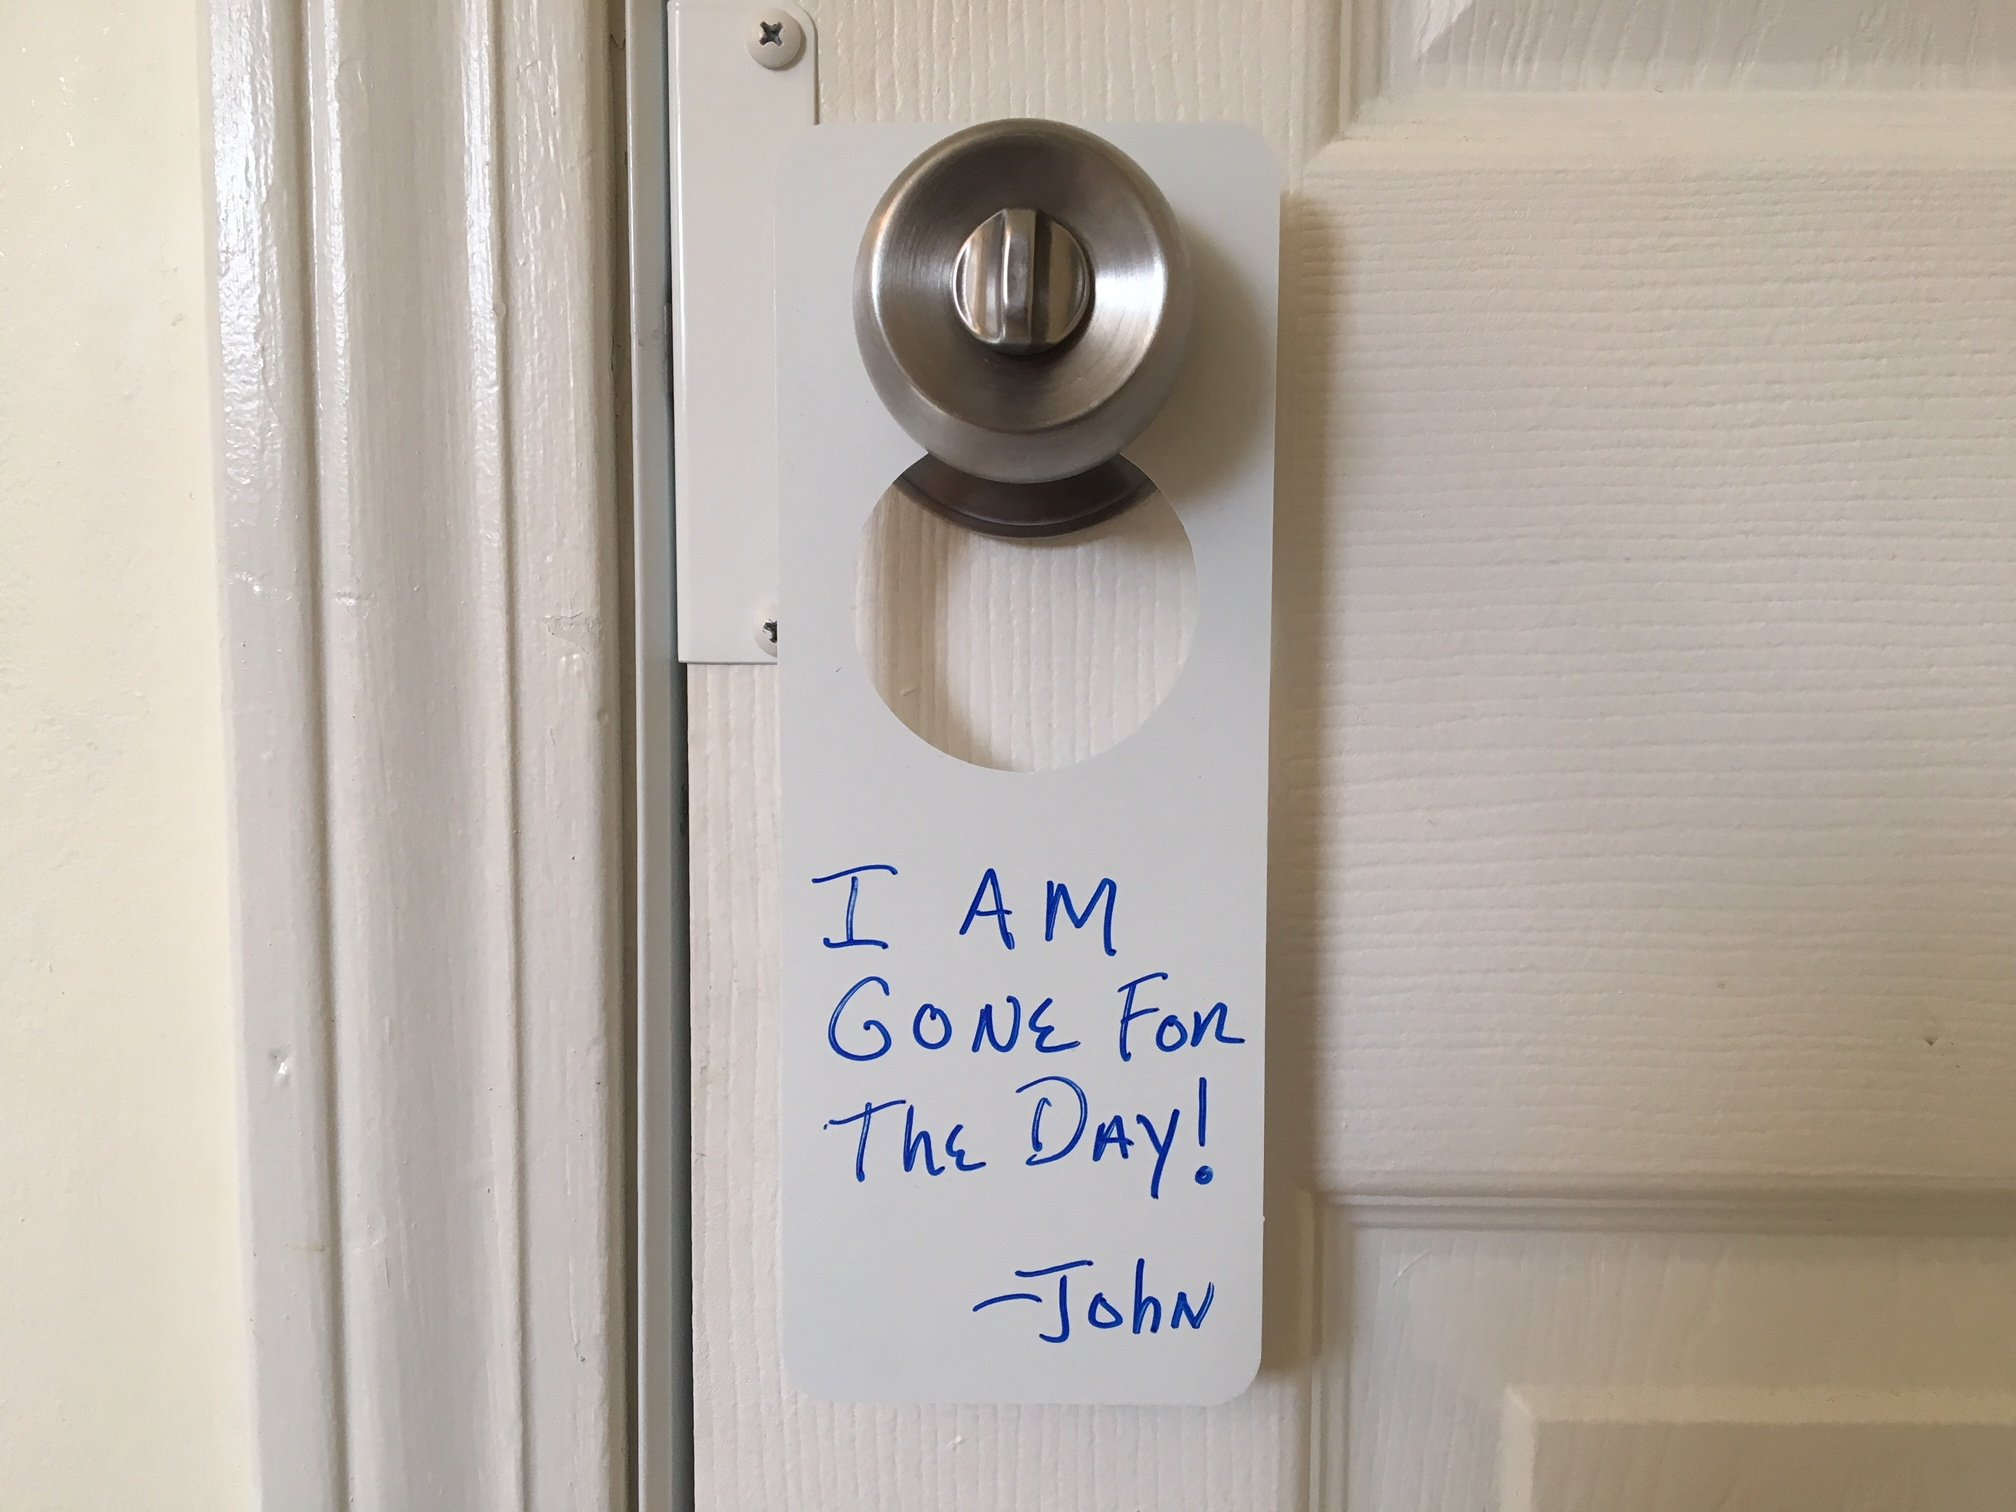 SecurePro Products Blank,Non-Erasable Plastic Door Knob Hangers, Write Your Own Permanent Messages, 8.125'' Tall x 3.125'' Wide.15 Mil Thick PVC Signs (5)